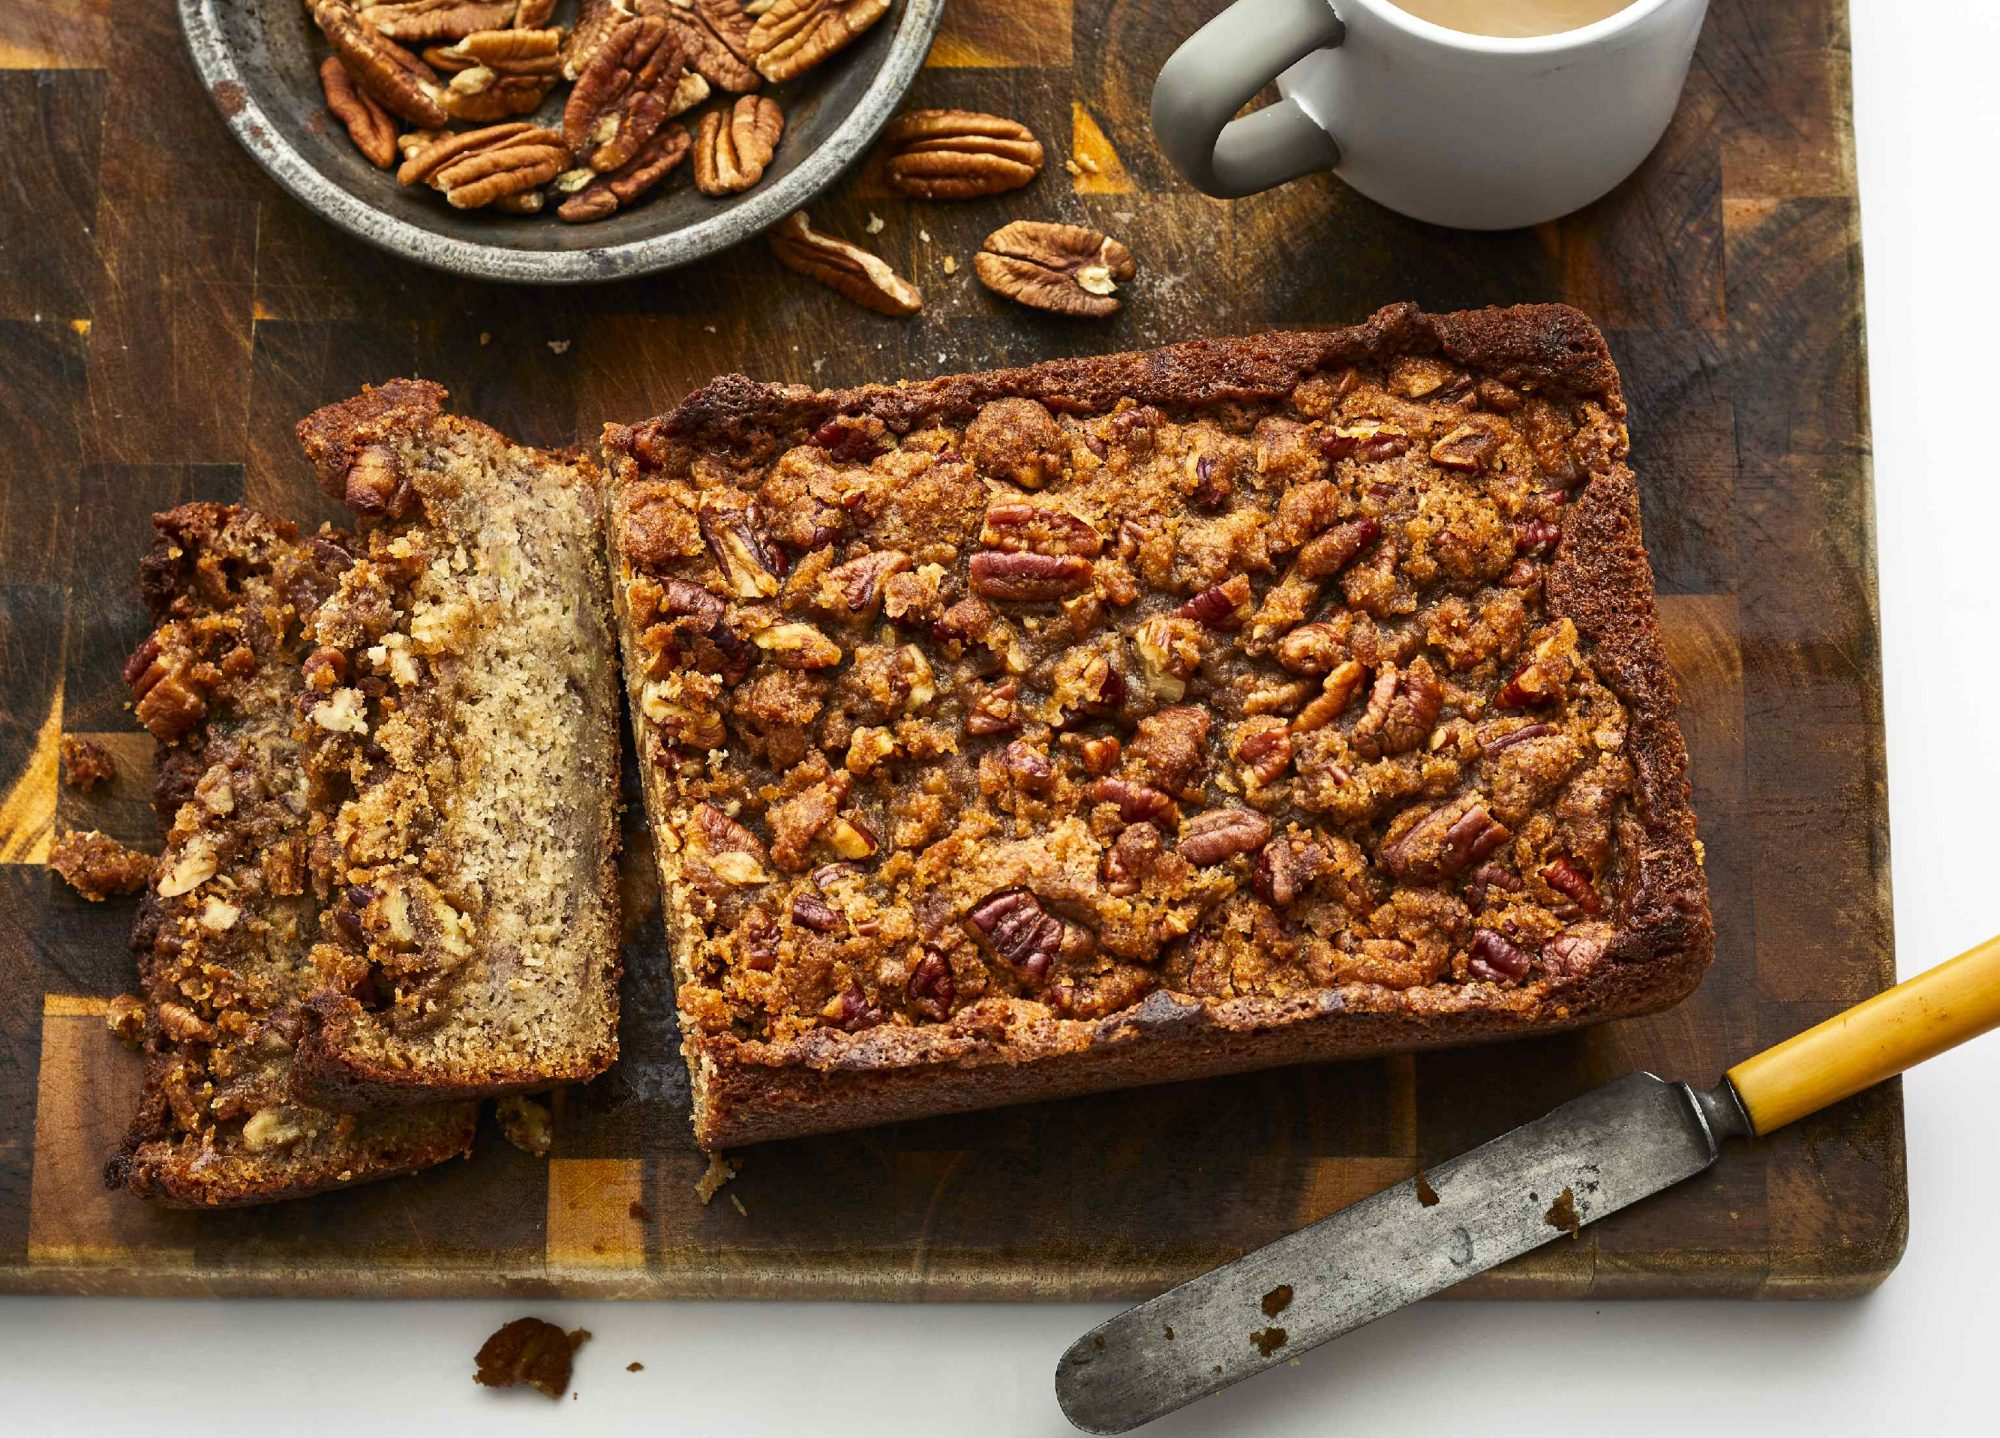 Sour Cream Banana Bread With Pecan Streusel Topping